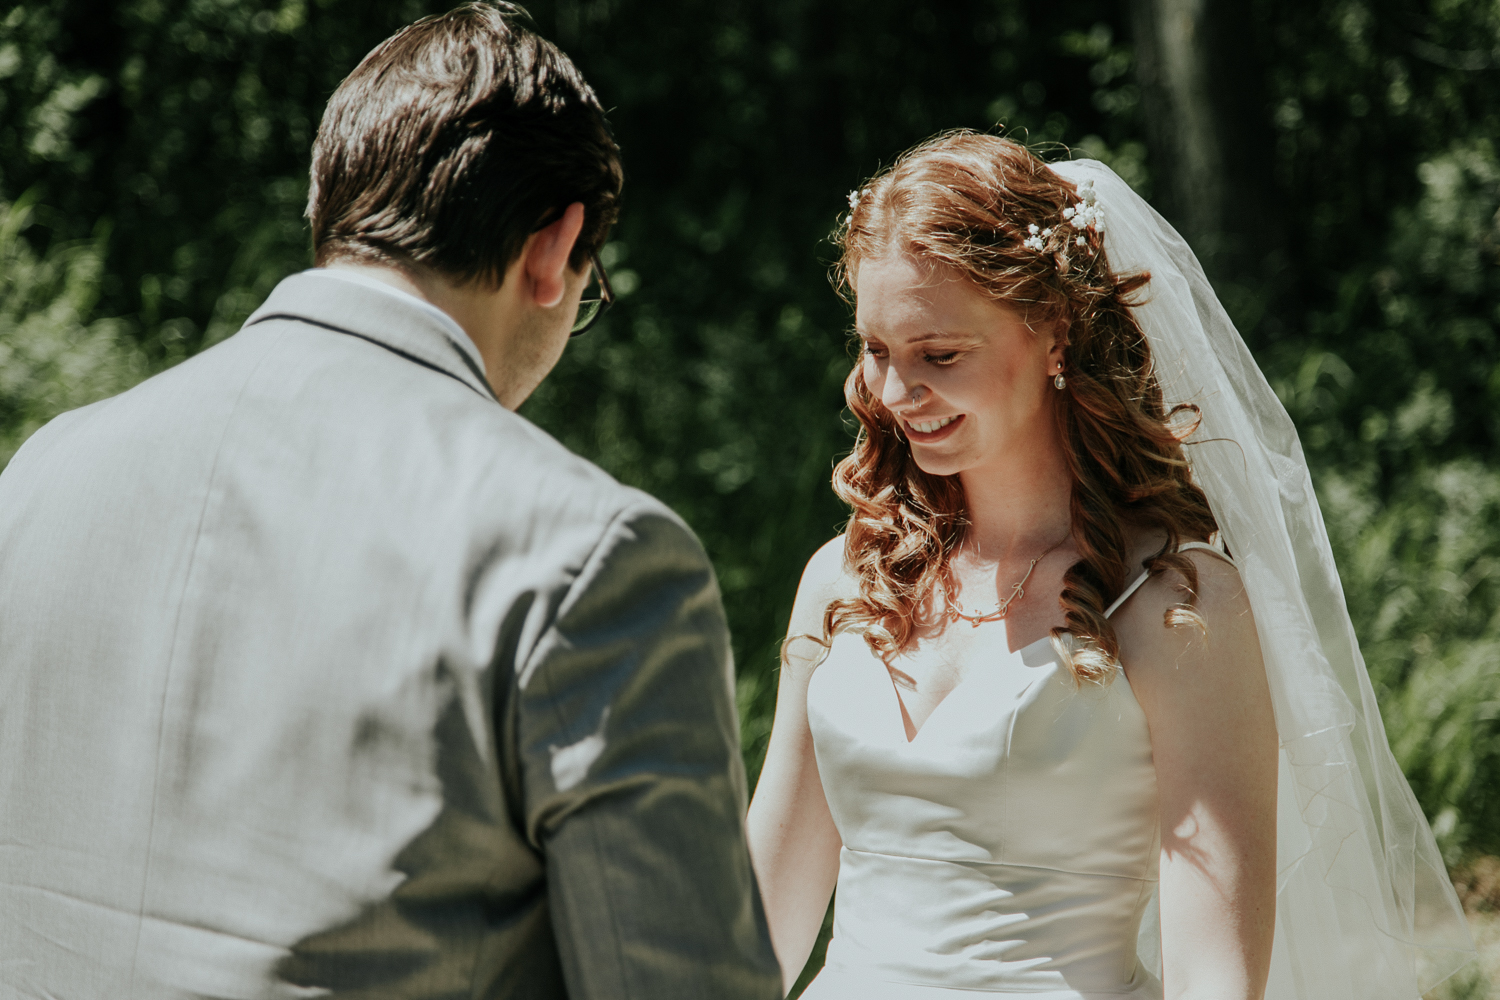 lethbridge-wedding-photographer-love-and-be-loved-photography-dan-tynnea-picture-image-photo-38.jpg